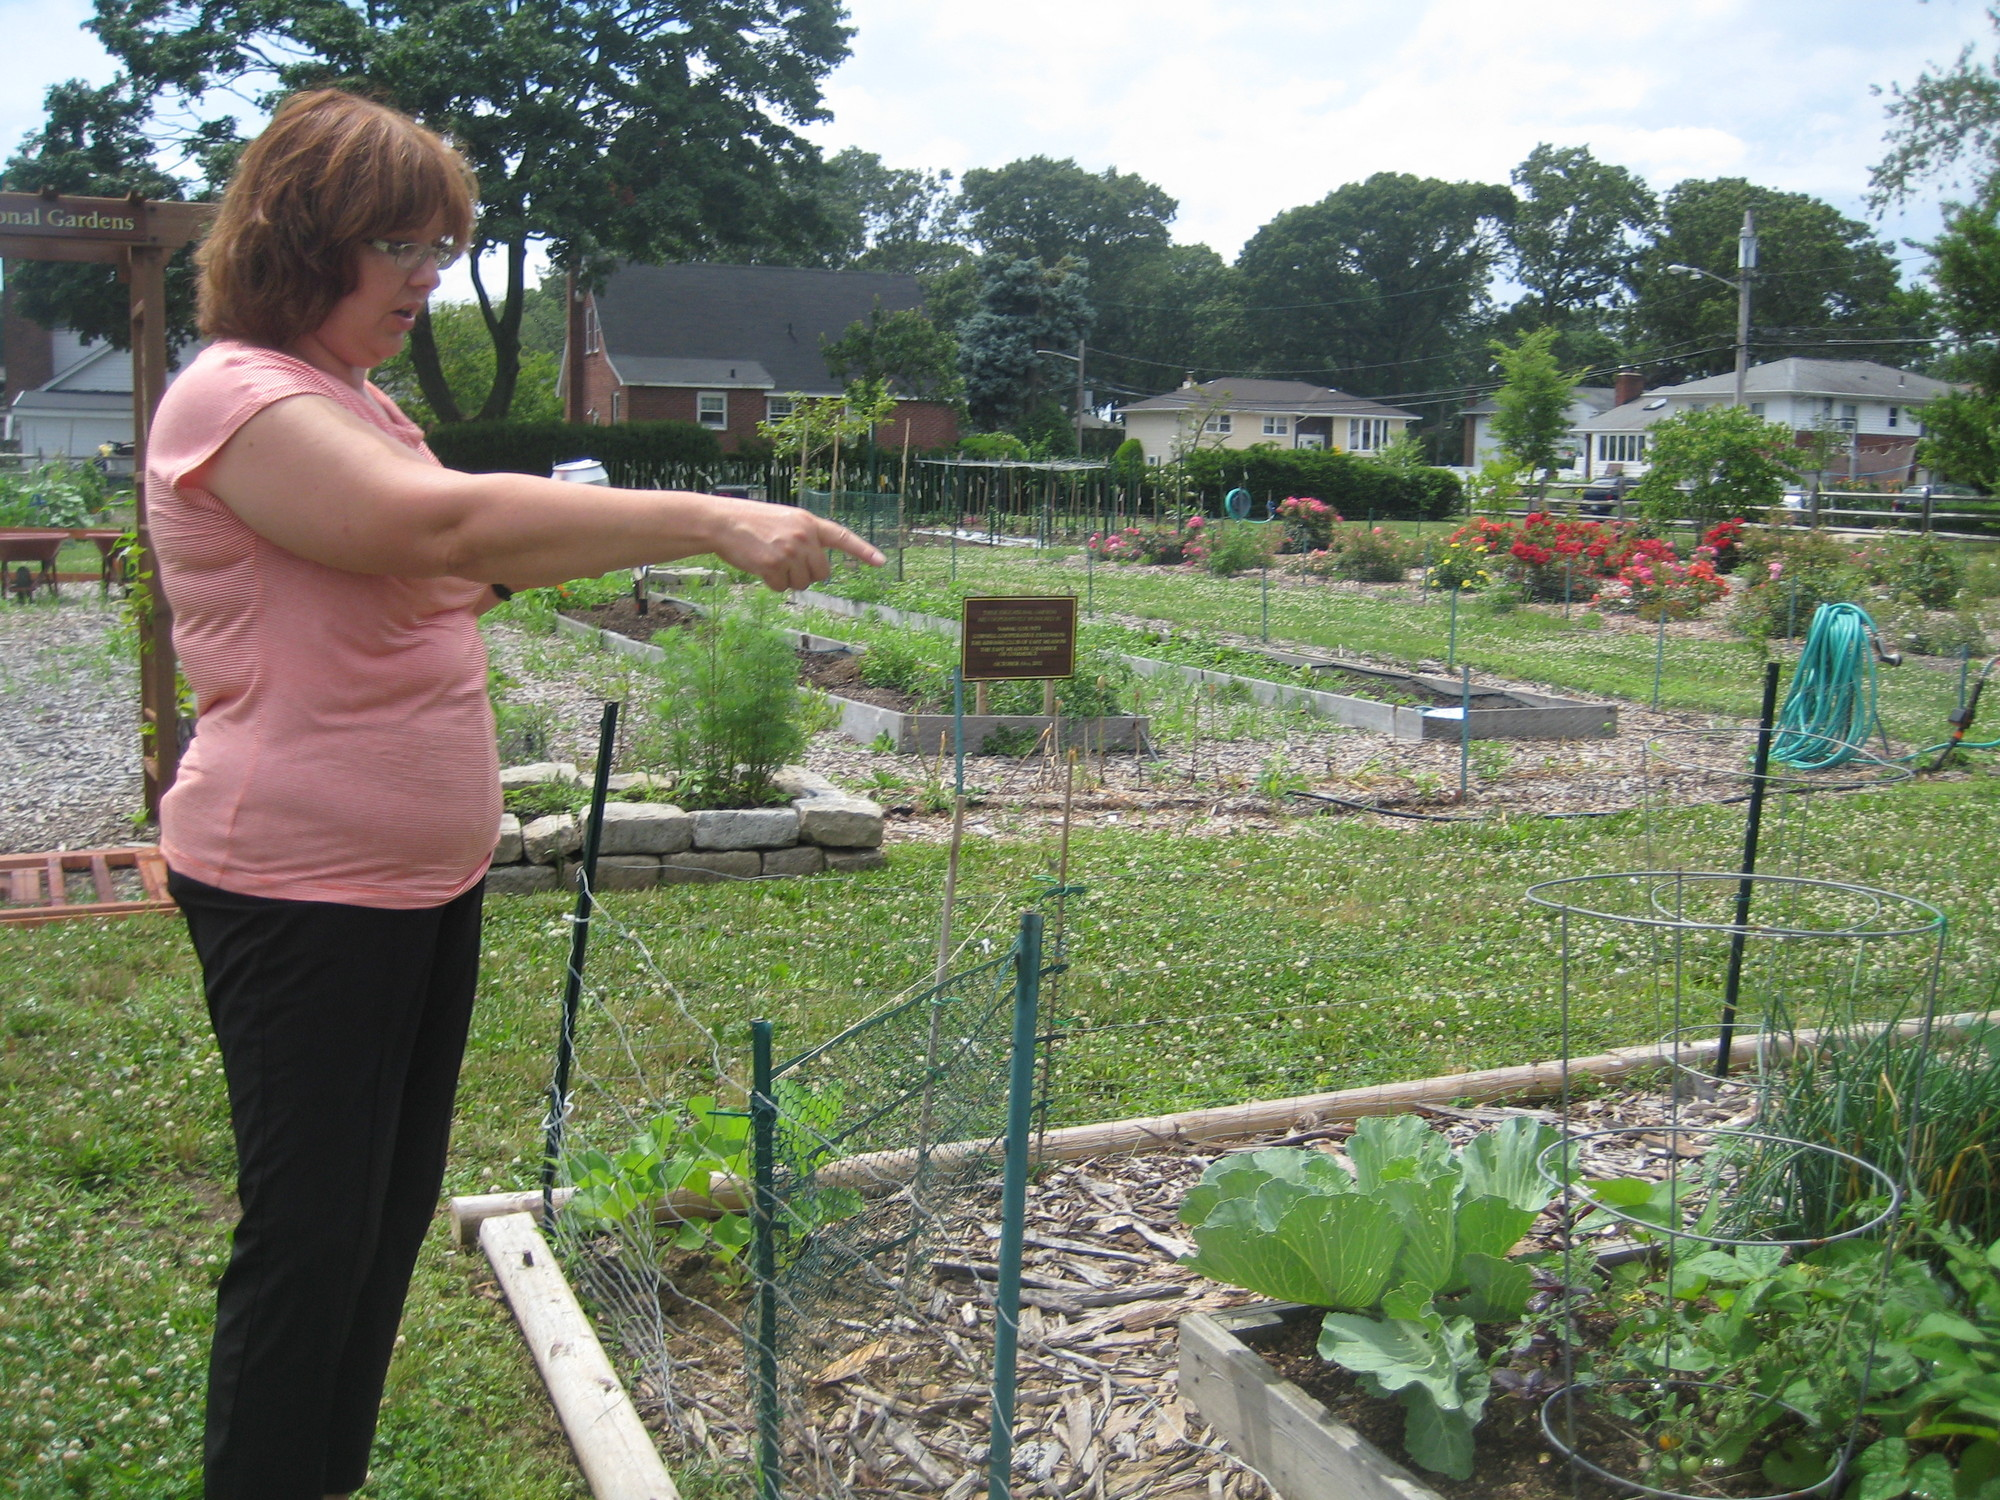 Bonnie Klein, an extension community educator, gave the Herald a tour of the garden on July 3.